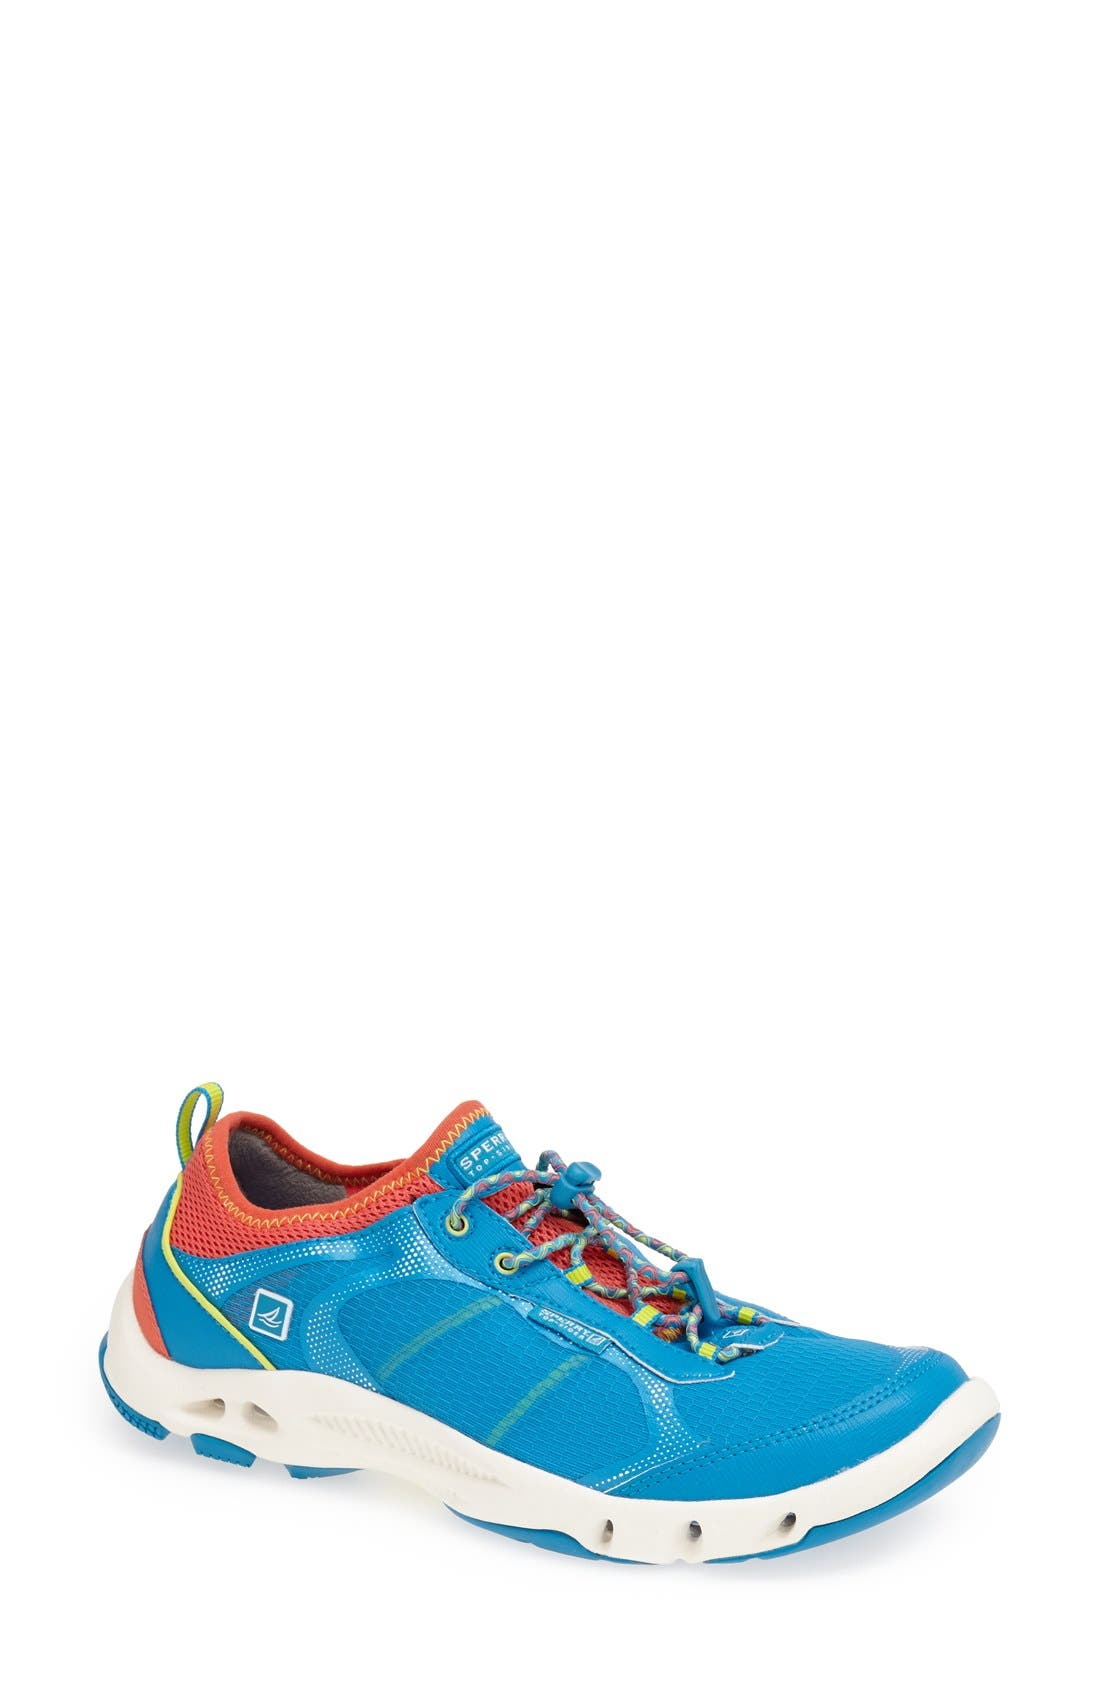 Alternate Image 1 Selected - Sperry 'H20 Escape' Sneaker (Women)